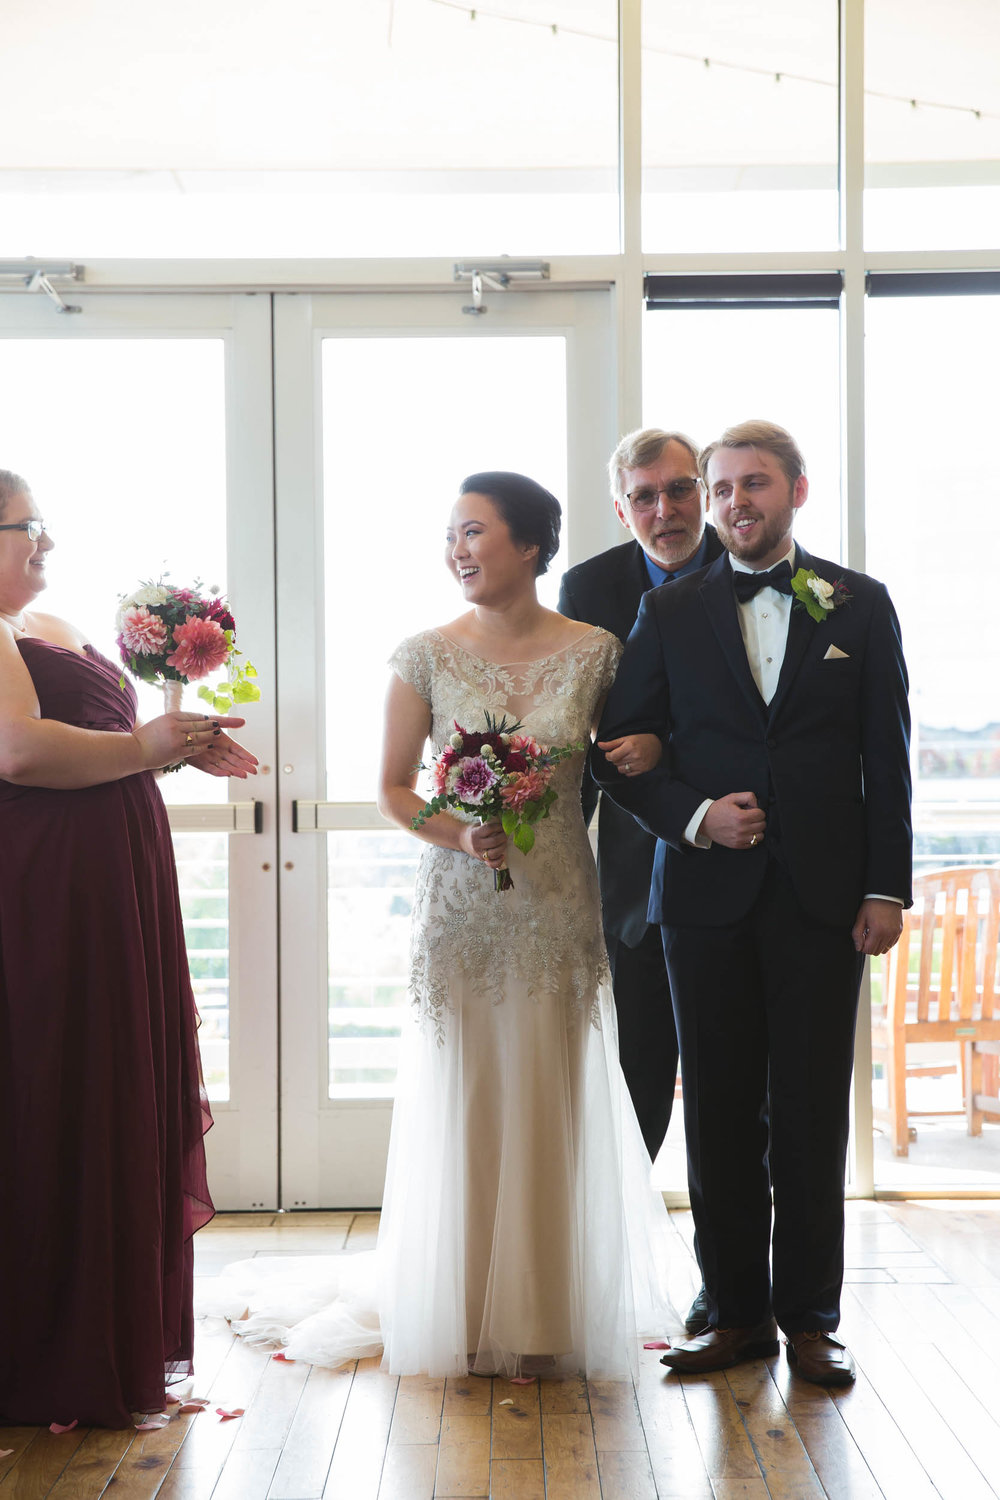 courtney and tom's wedding at pinstripes by anna schultz photography-57.jpg